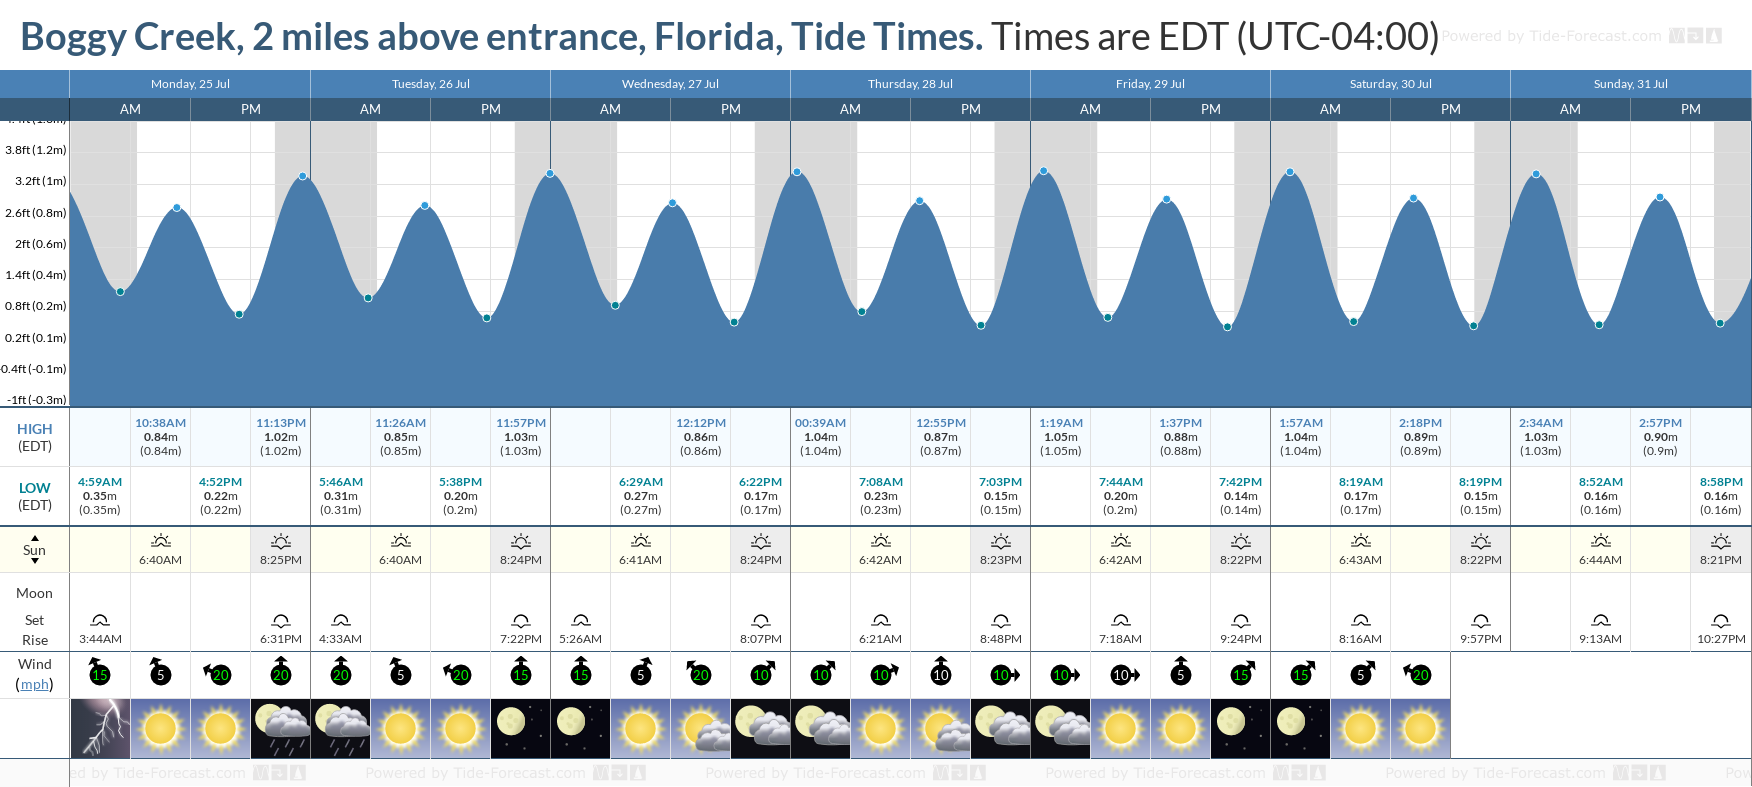 Boggy Creek, 2 miles above entrance, Florida Tide Chart including high and low tide tide times for the next 7 days